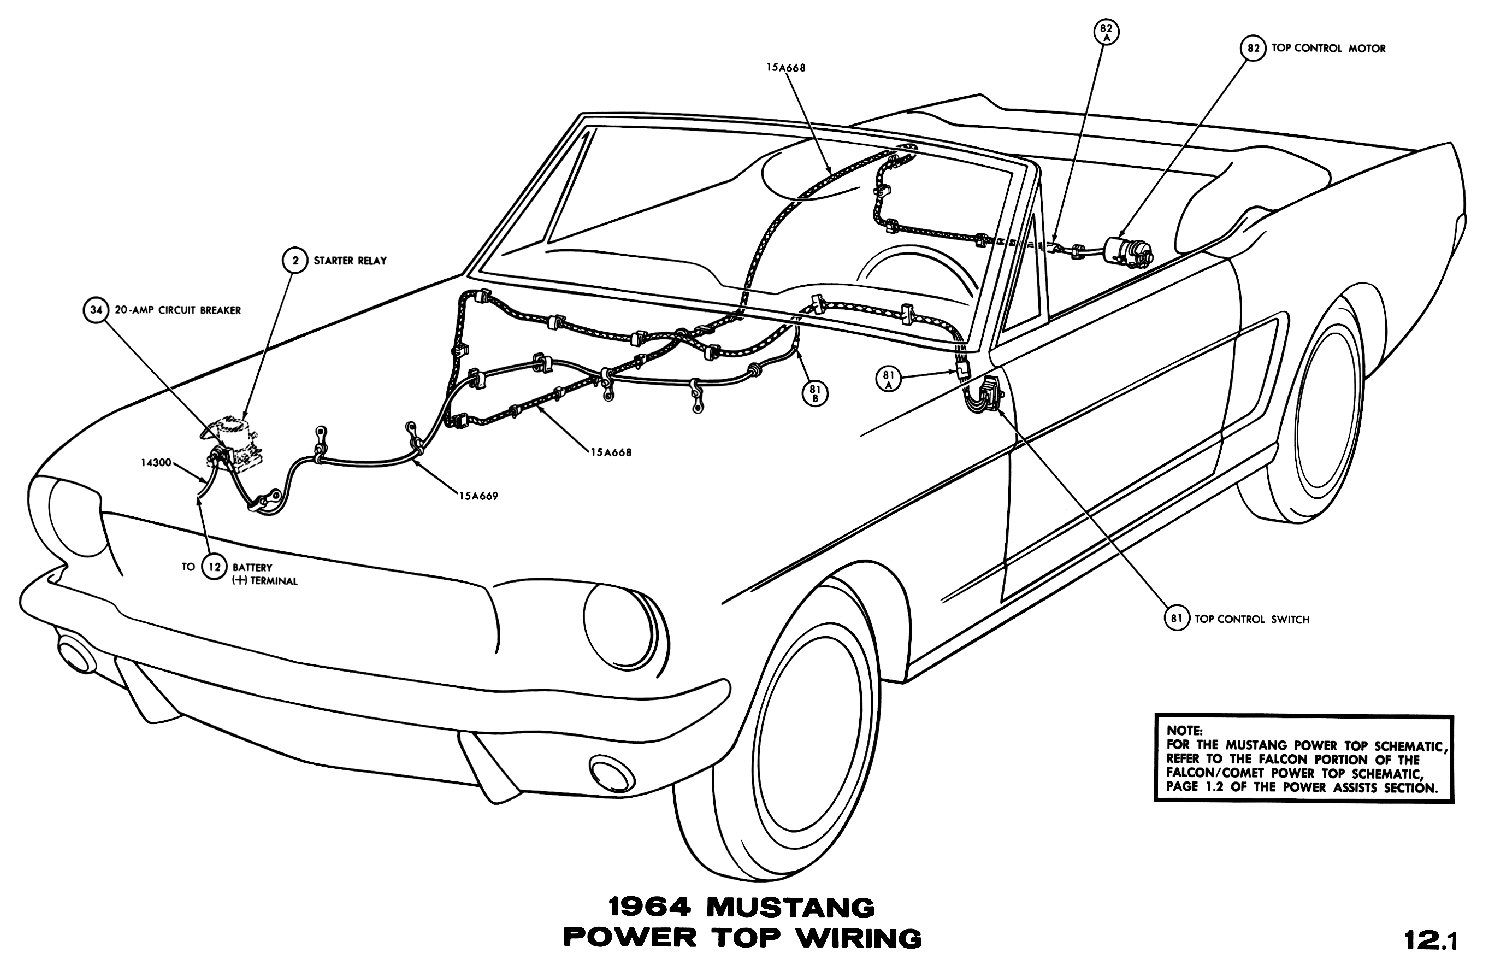 1964 Mustang Wiring Diagrams Average Joe Restoration 12 Volt Charging System Diagram Schematic Power Top Pictorial Or